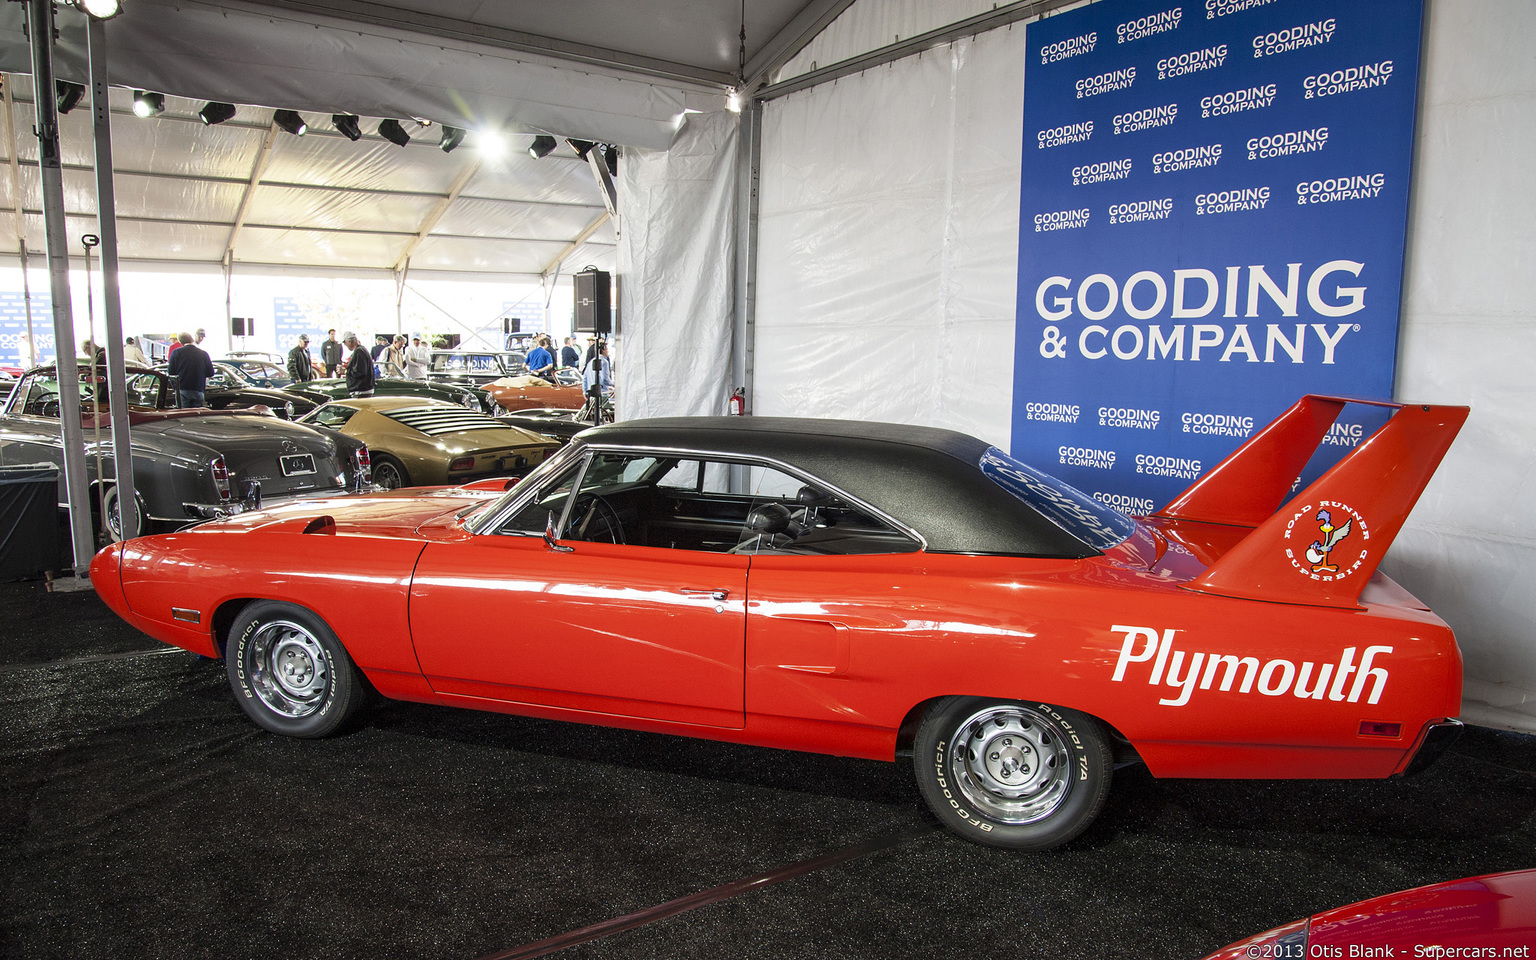 The 2013 Scottsdale Auctions by Gooding & Company